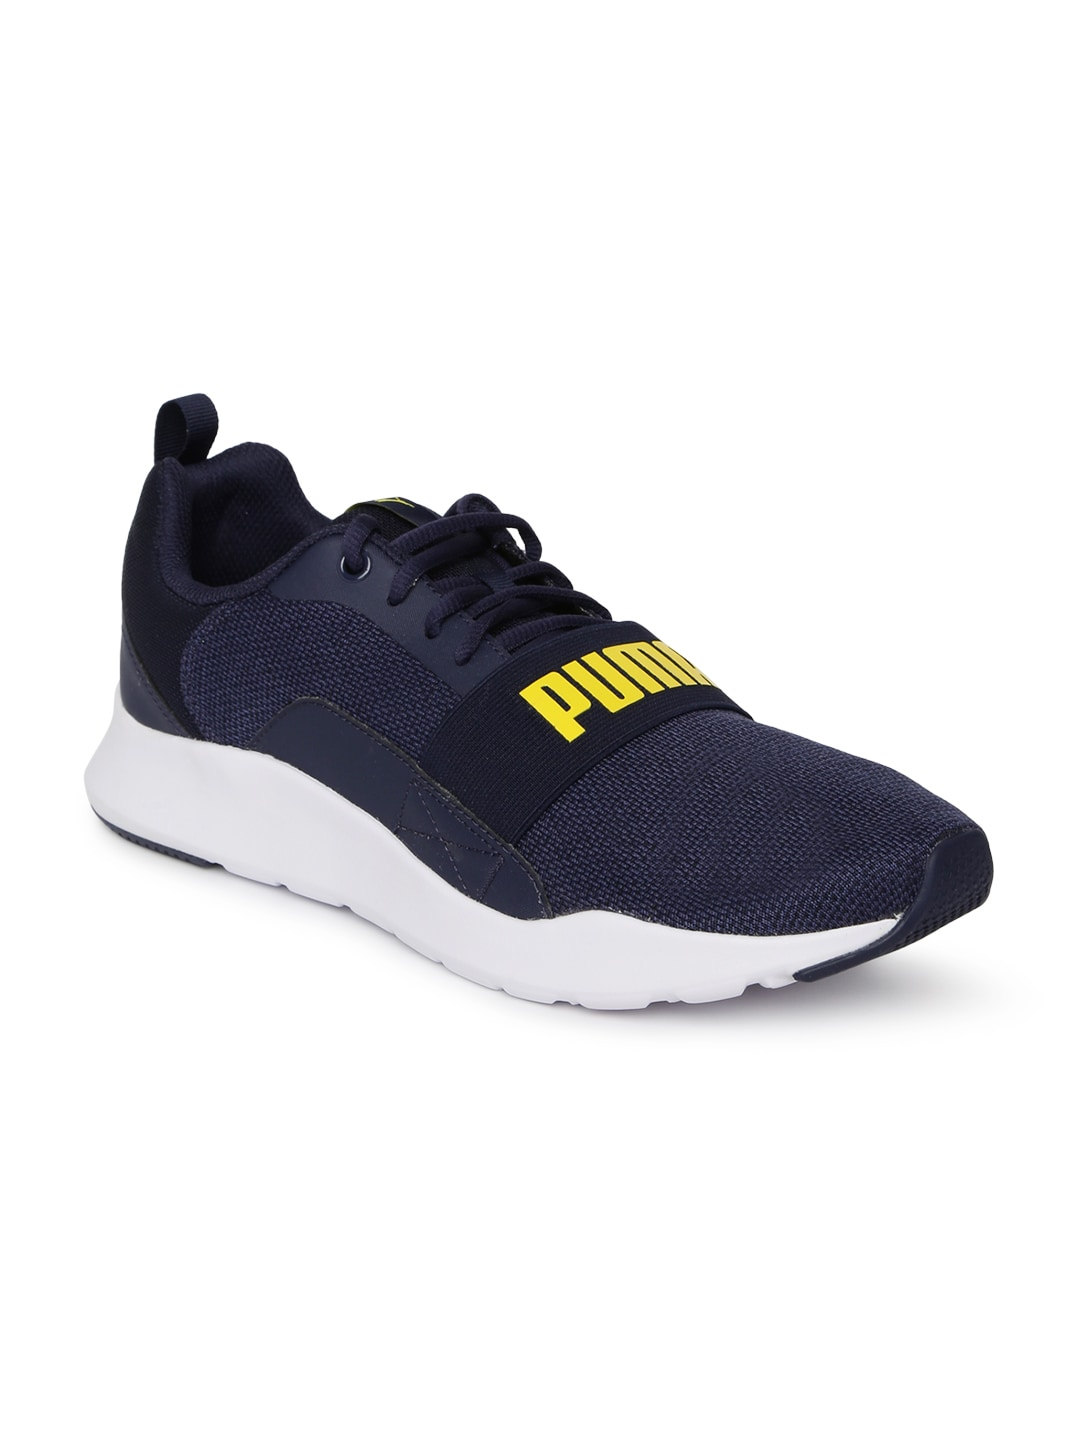 3b43b4253e009f Puma Shoes - Buy Puma Shoes for Men   Women Online in India